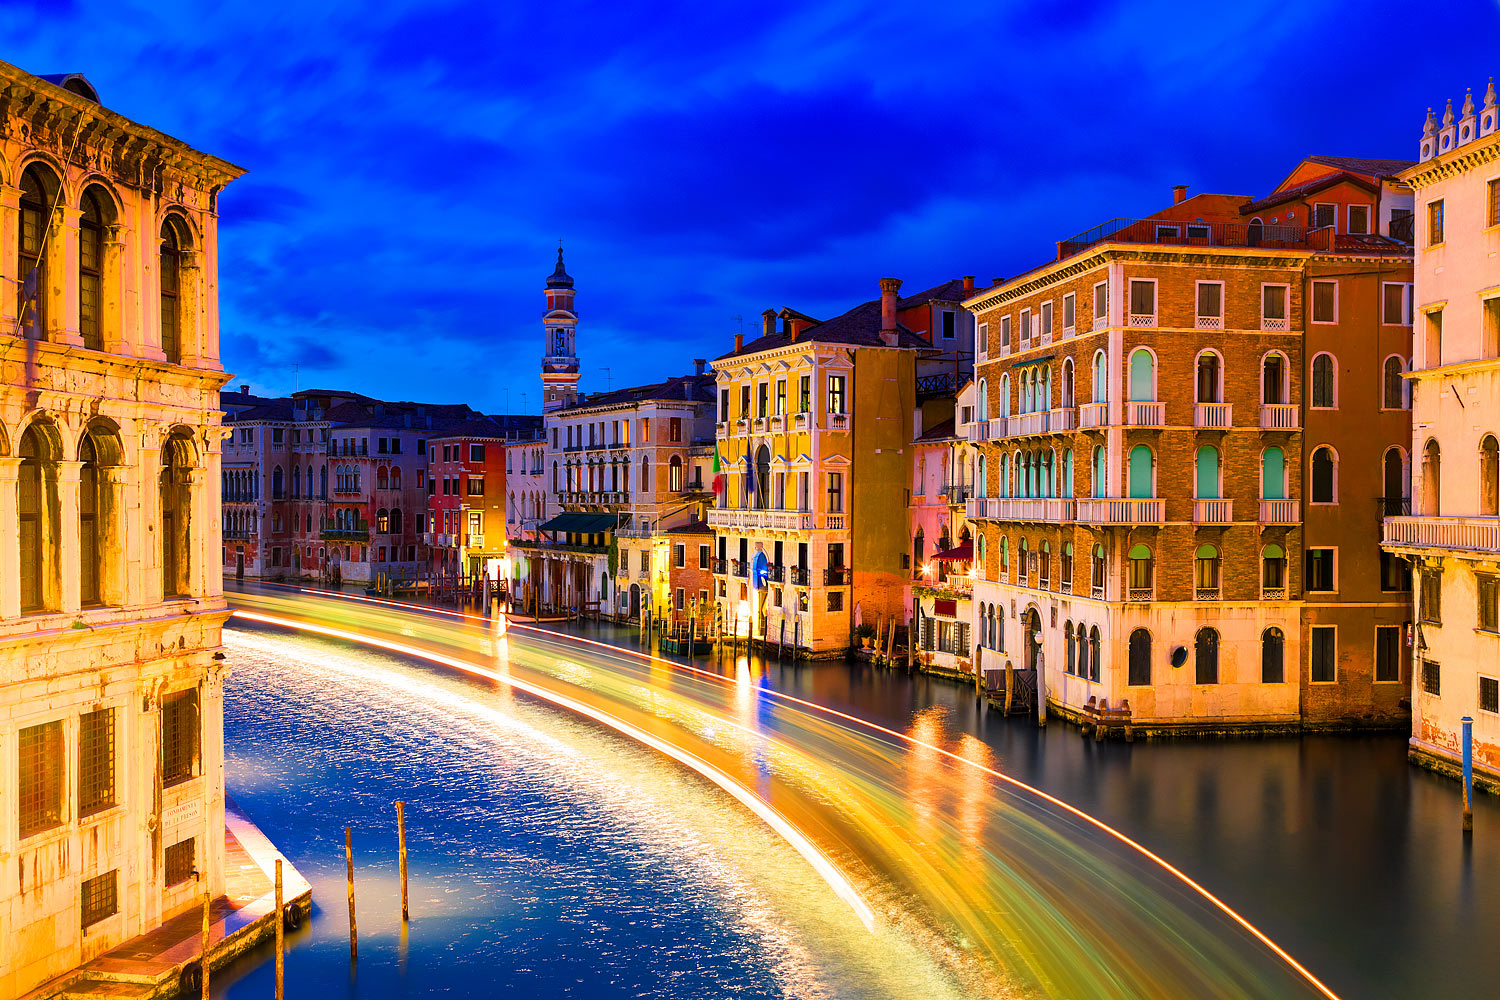 The Grand Canal in Venice with Light Trails of a Vaporetto Vessel, Italy